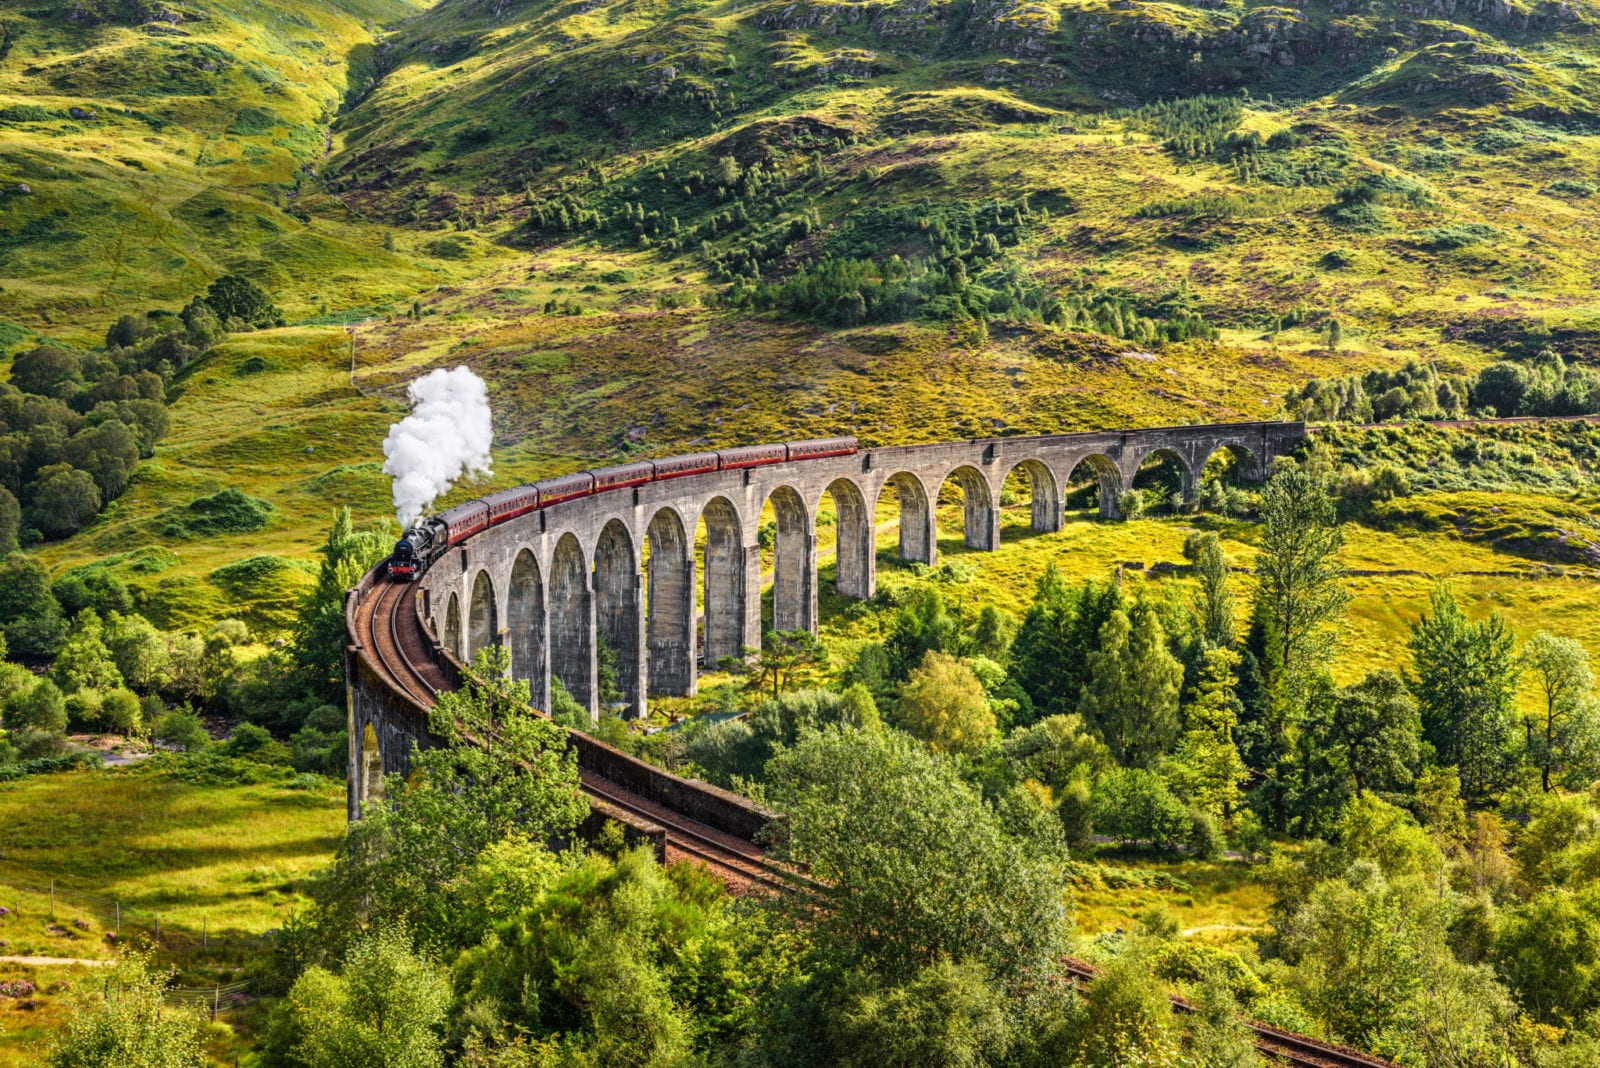 Glenfinnan,Railway,Viaduct,In,Scotland,With,The,Jacobite,Steam,Train